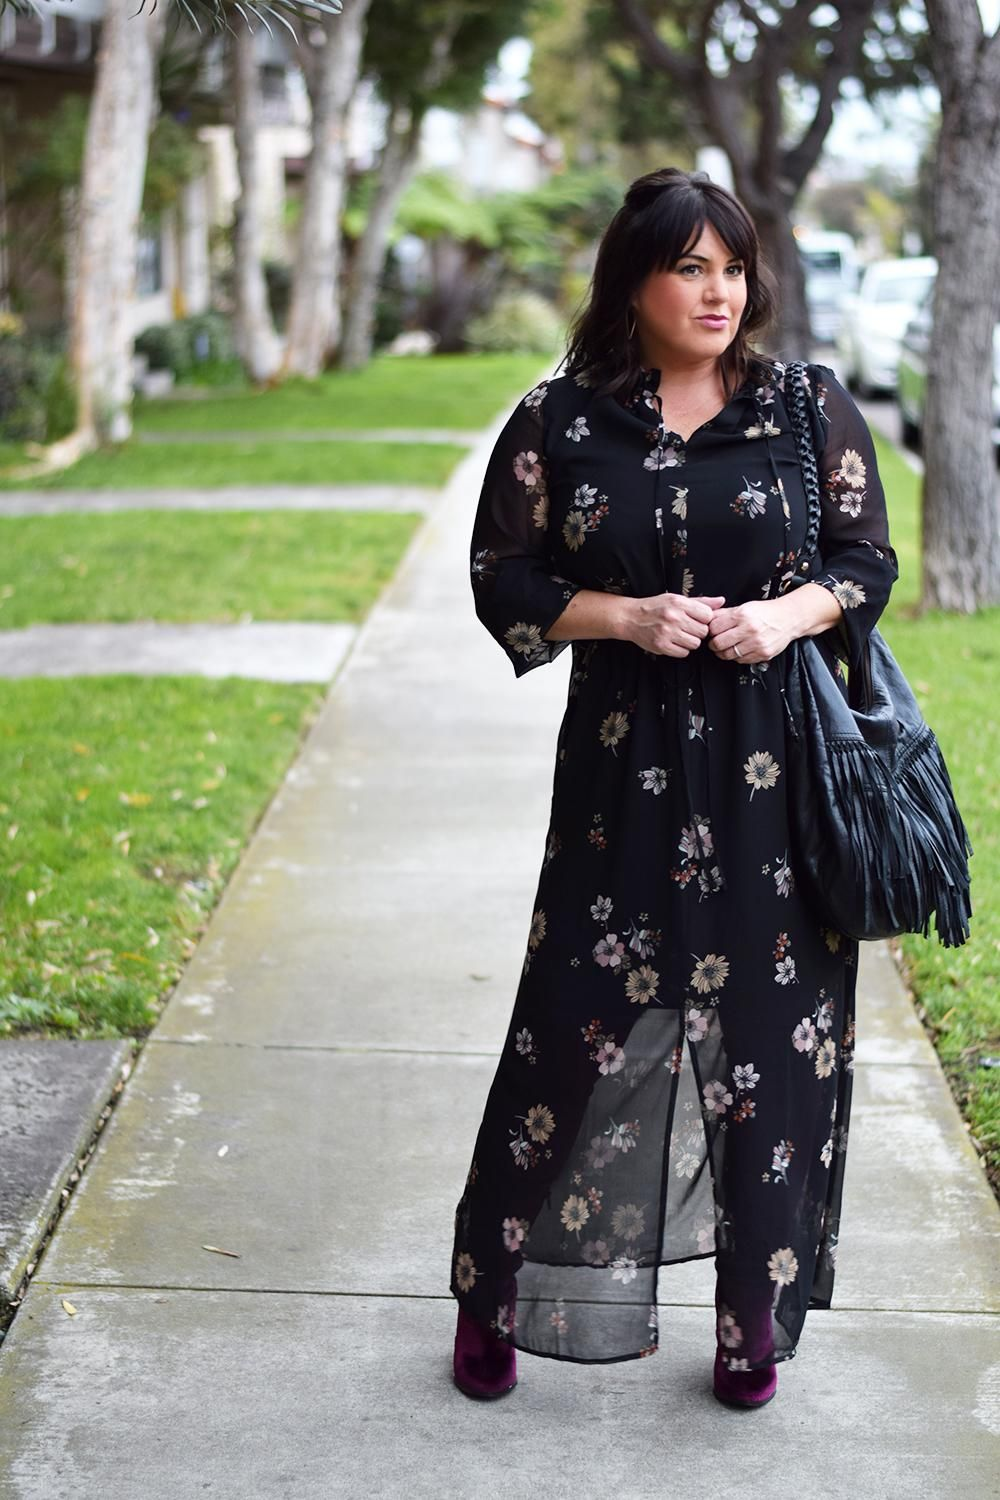 How To Wear A Floral Maxi Midi Dress In Winter Outfit Barefoot In La Fashion Blog Style Ideas 0106 Women S Midi Maxi Dress Winter Outfits Women Winter Dresses